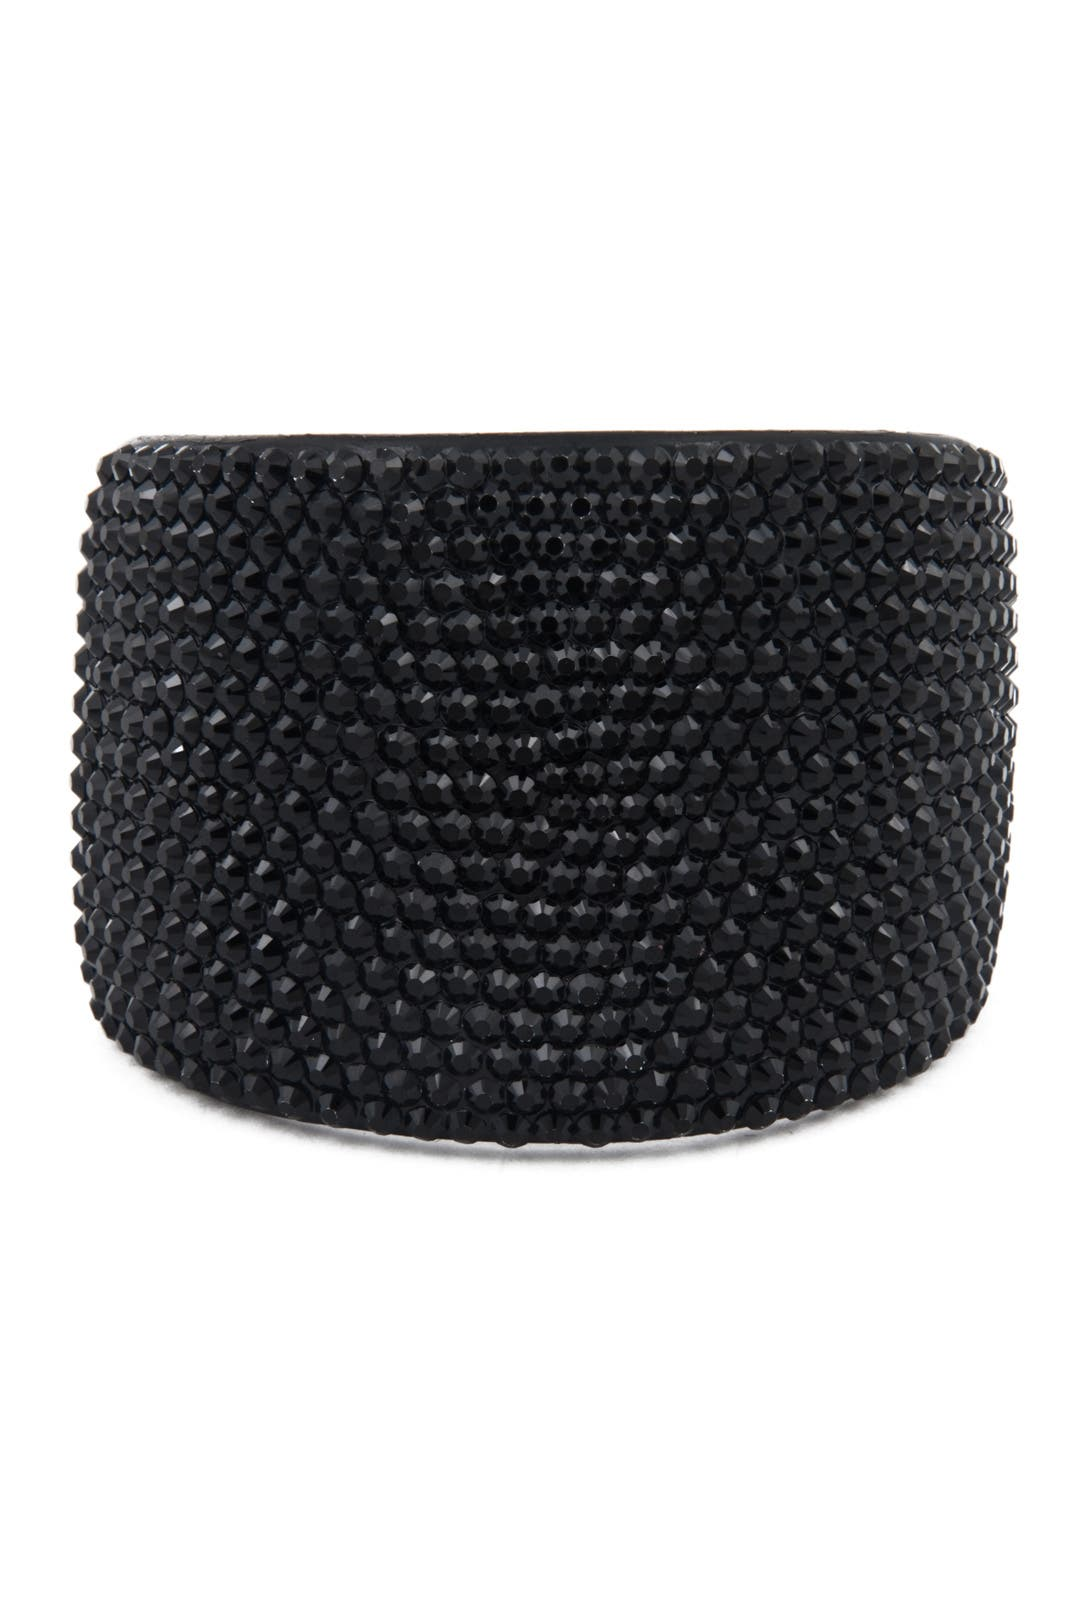 Red Carpet Cuff by Kenneth Jay Lane